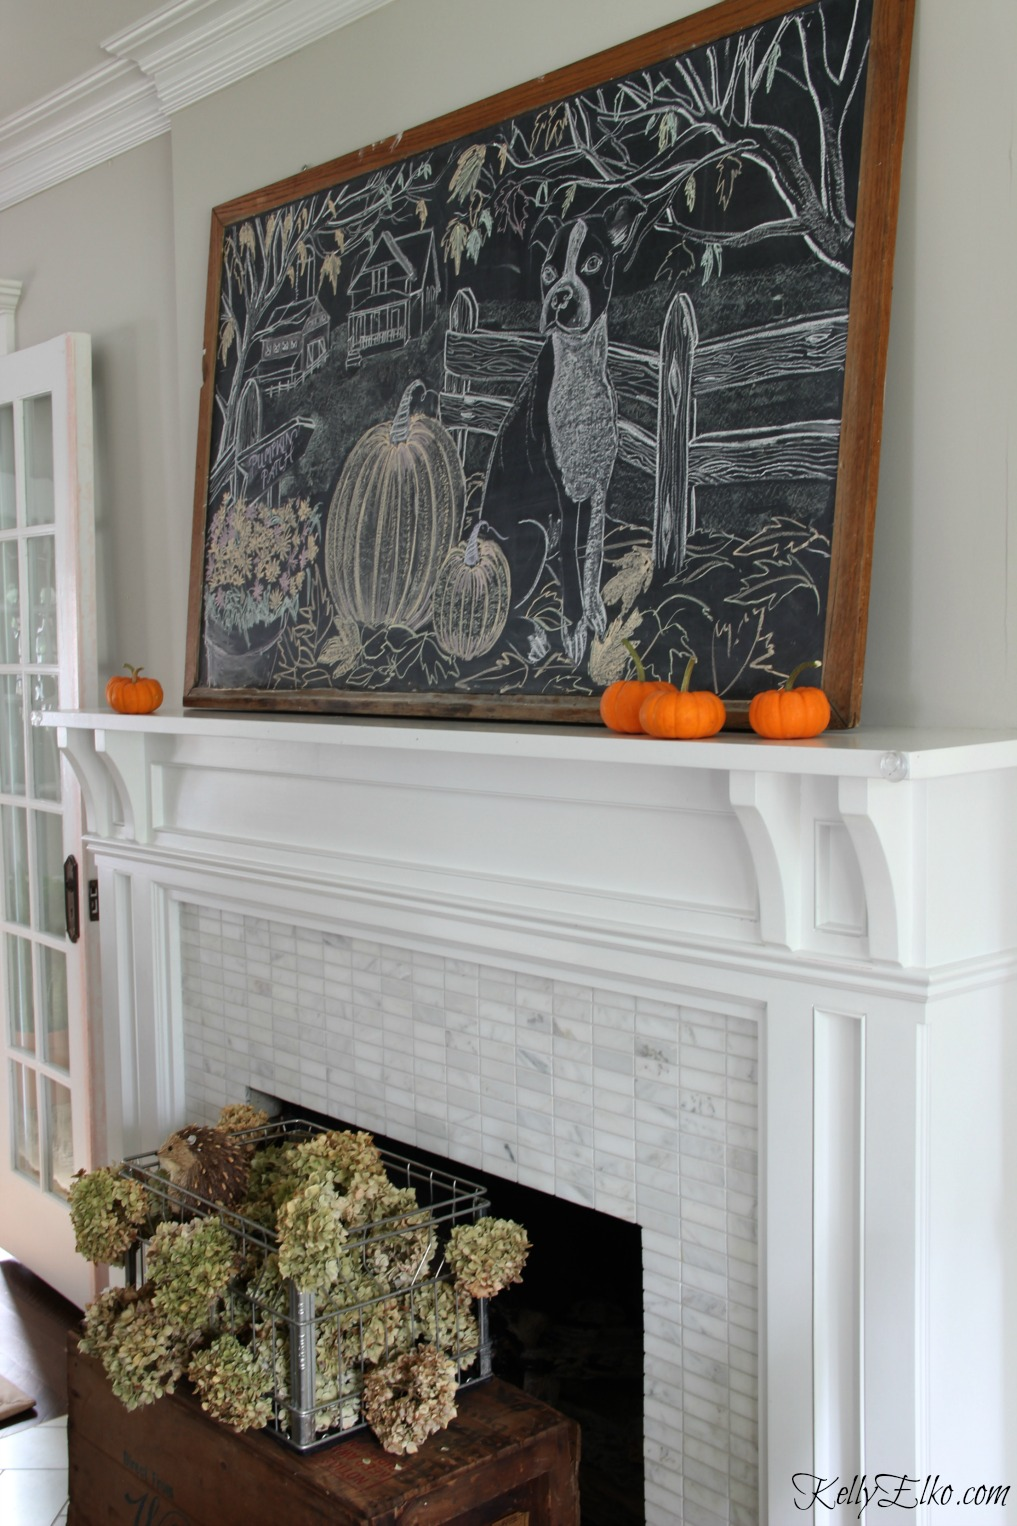 How fun is this giant old chalkboard on the mantel for fall kellyelko.com